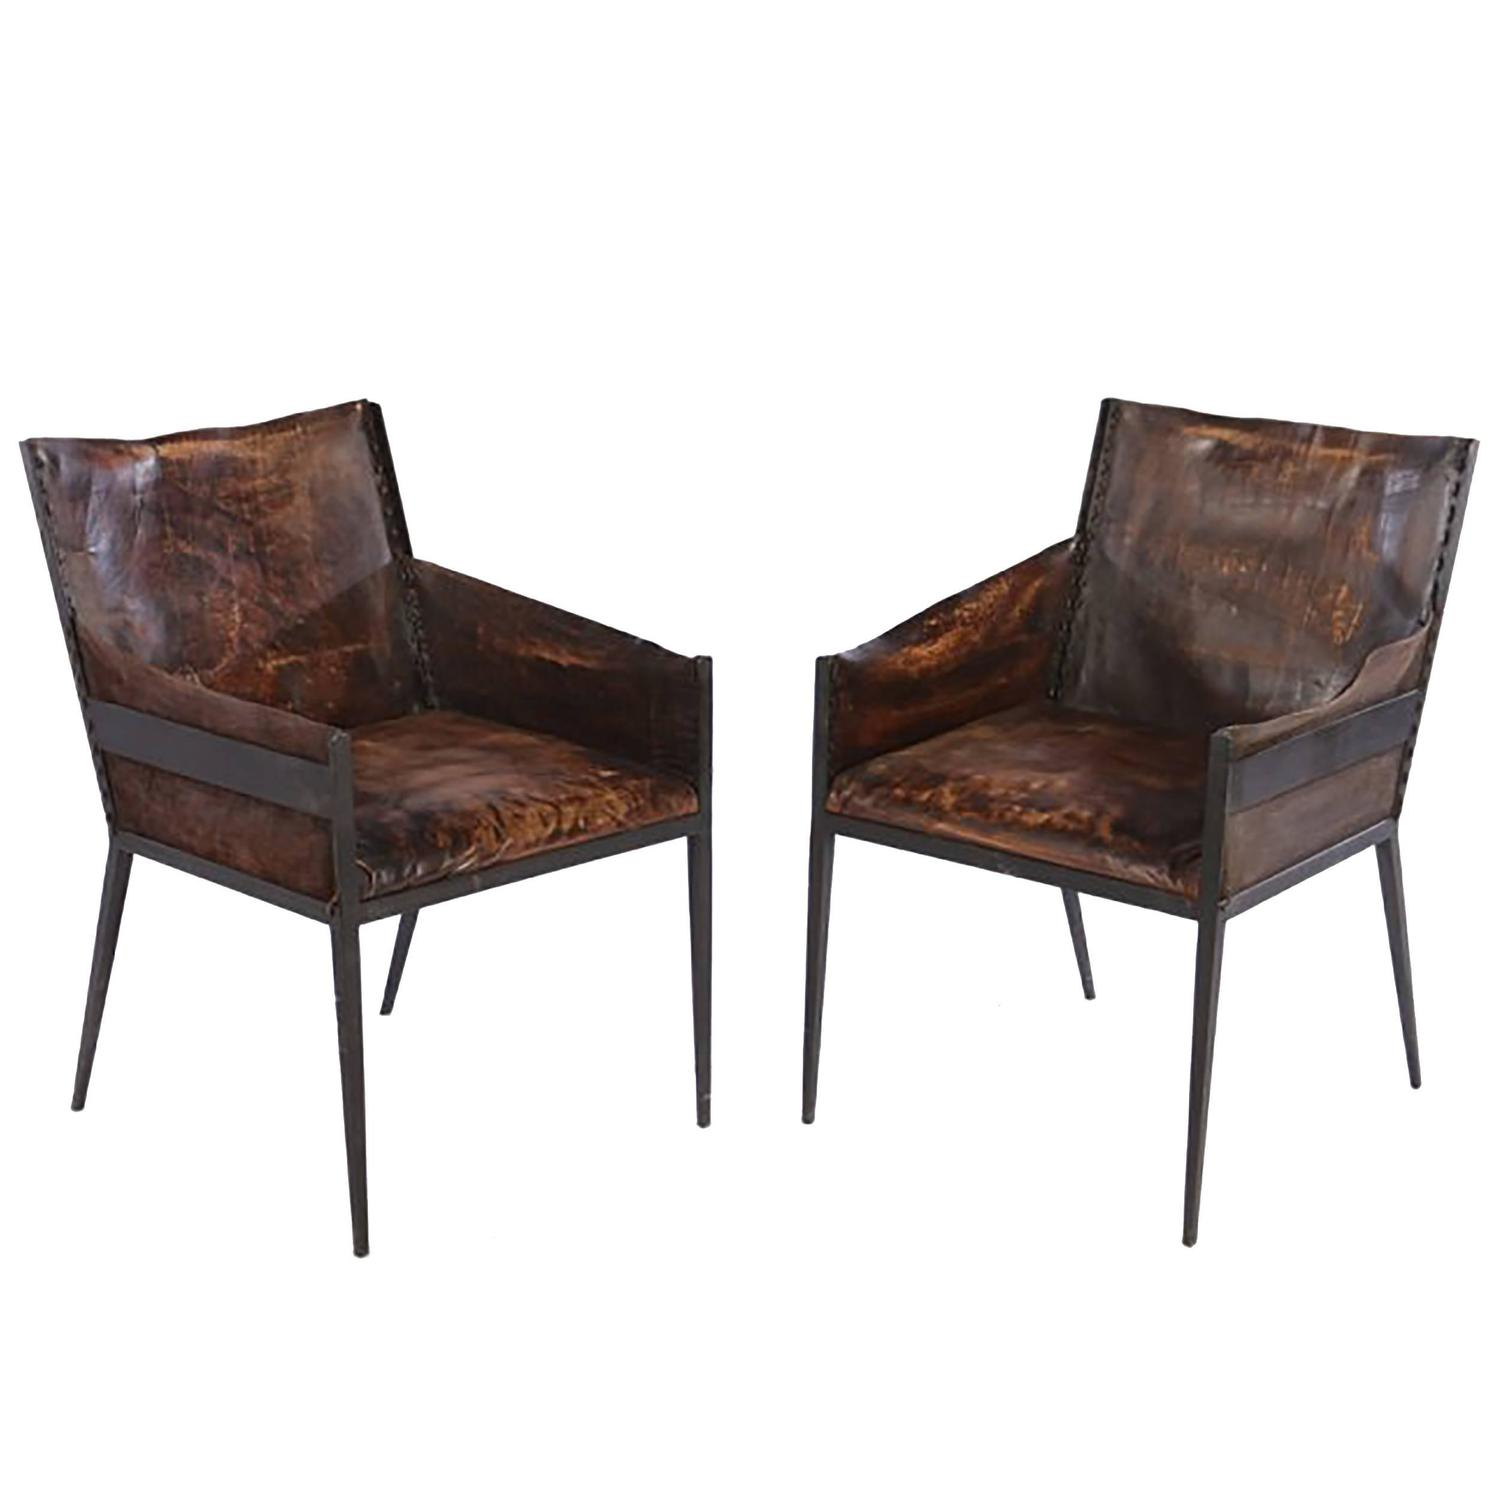 Pair of Leather and Iron Chairs at 1stdibs